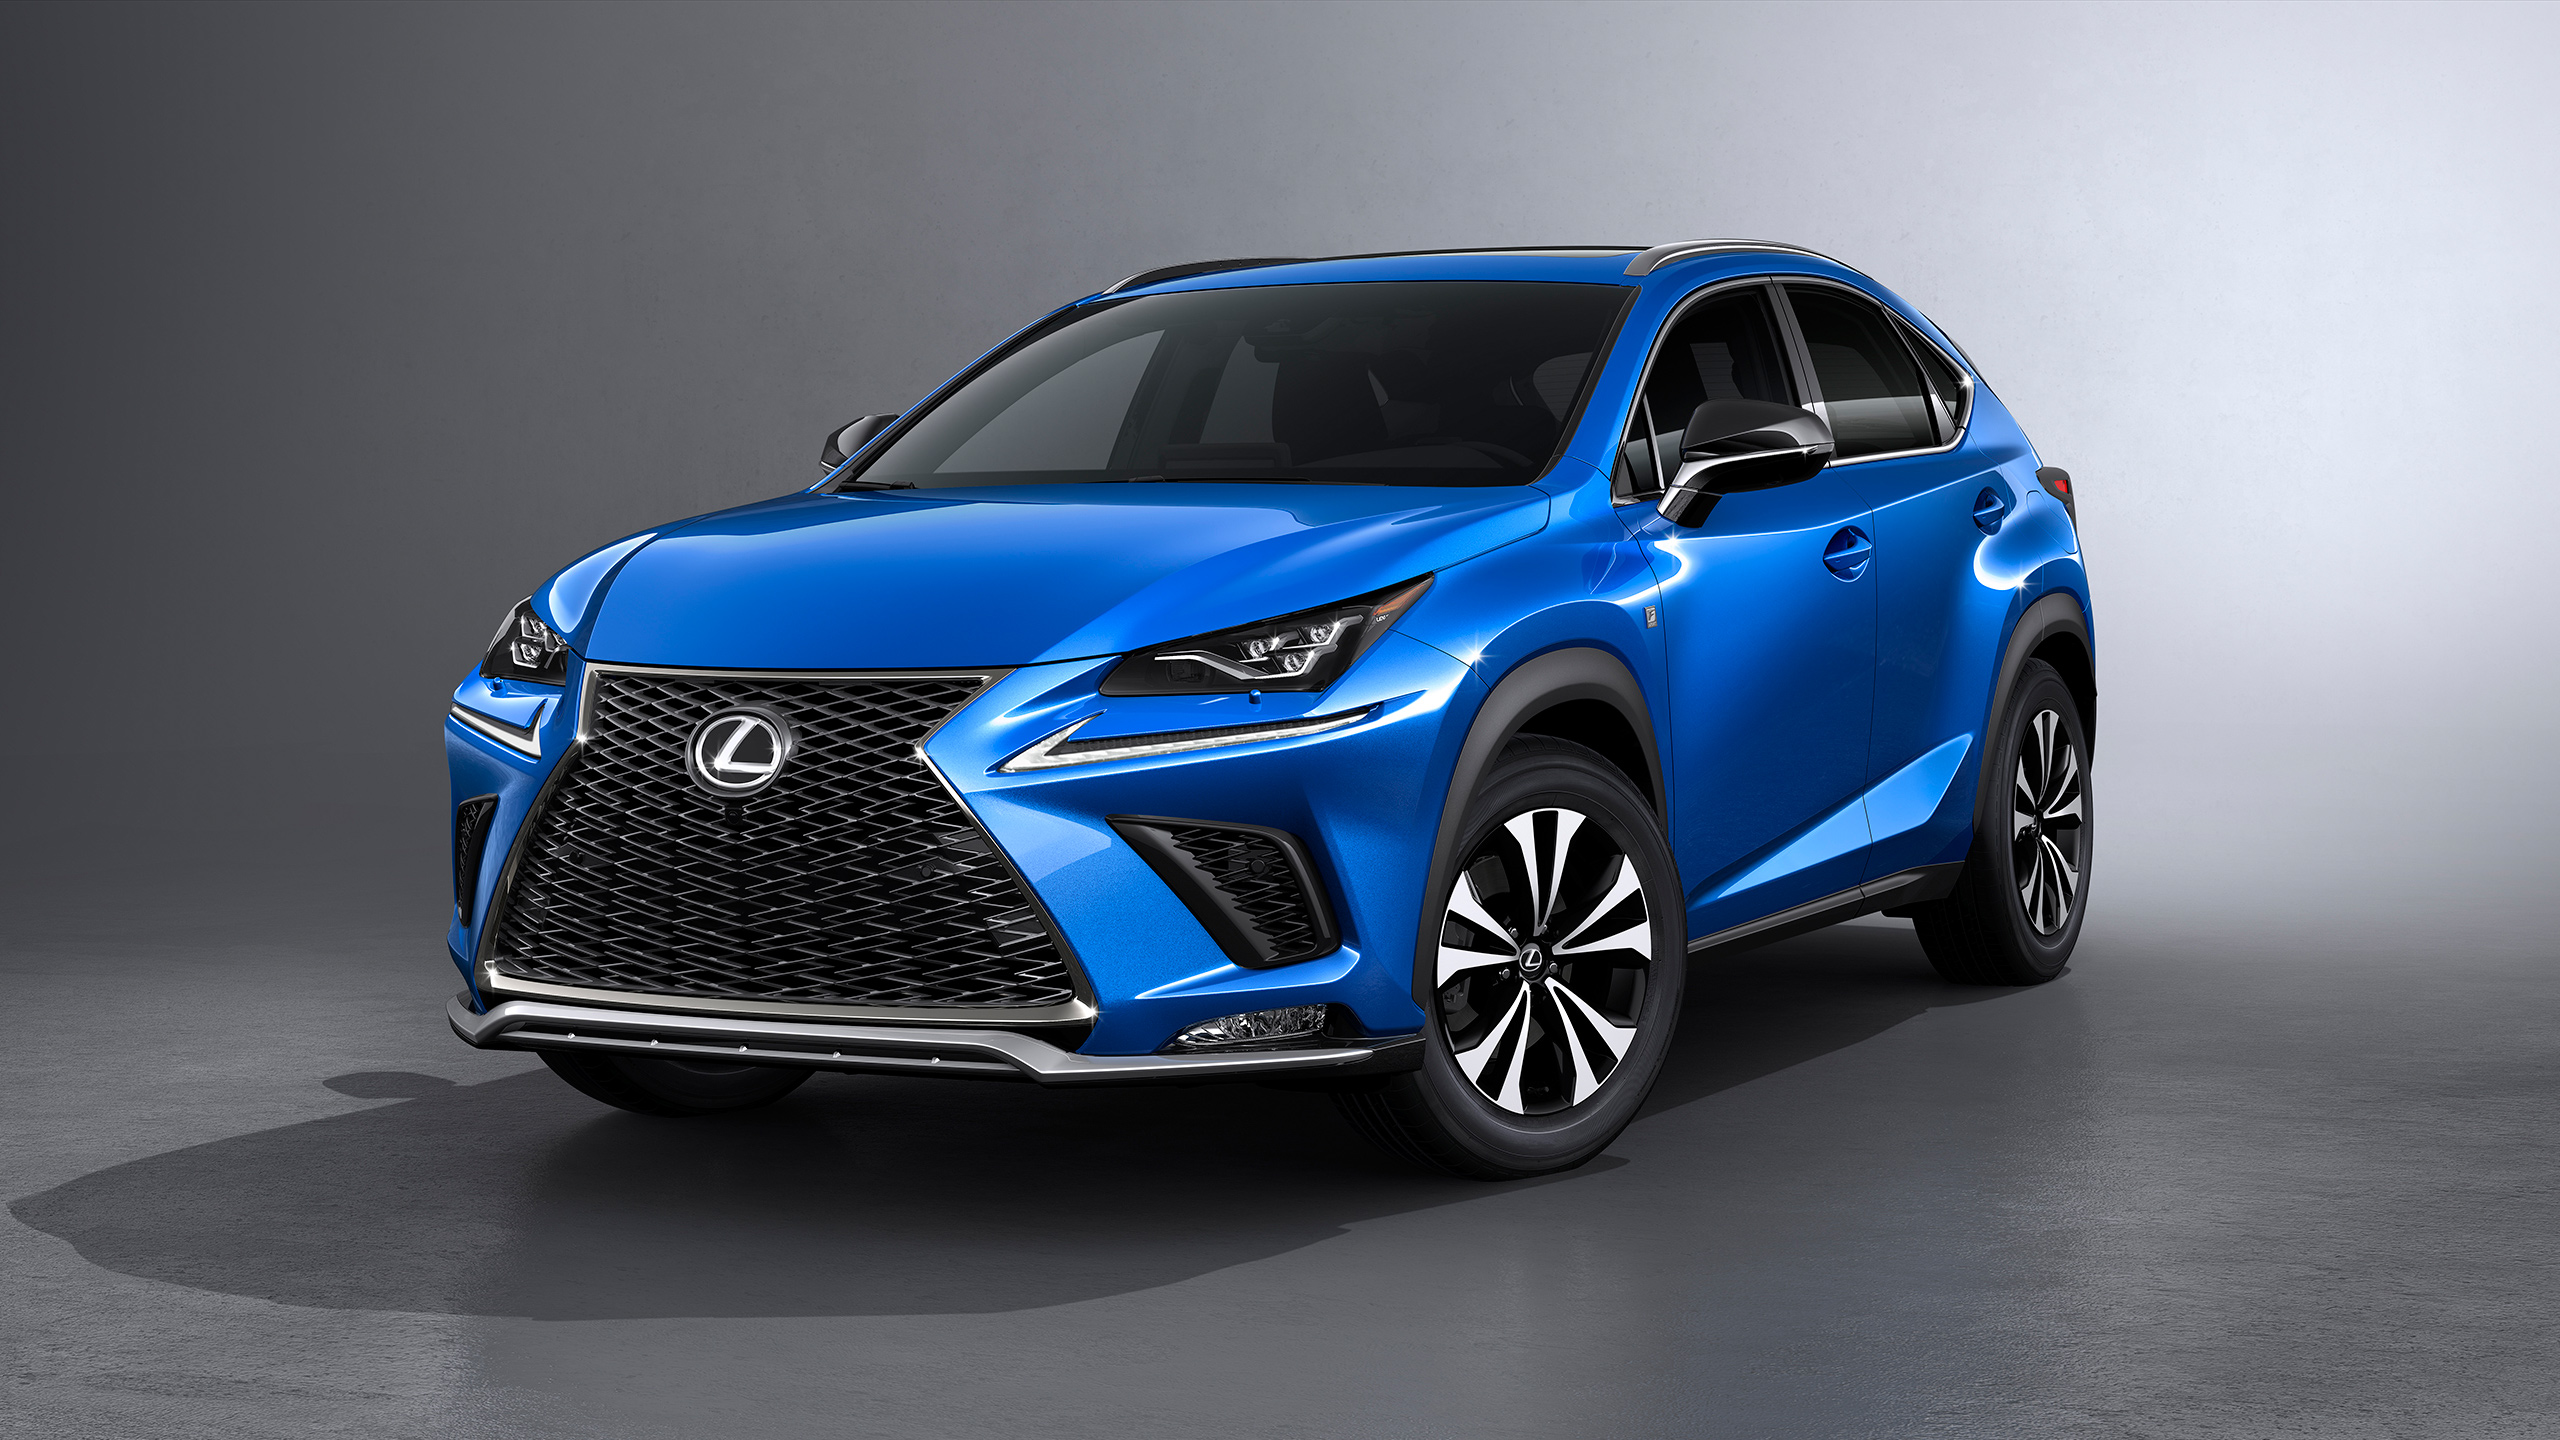 2017 lexus nx luxury crossover wallpaper hd car wallpapers. Black Bedroom Furniture Sets. Home Design Ideas